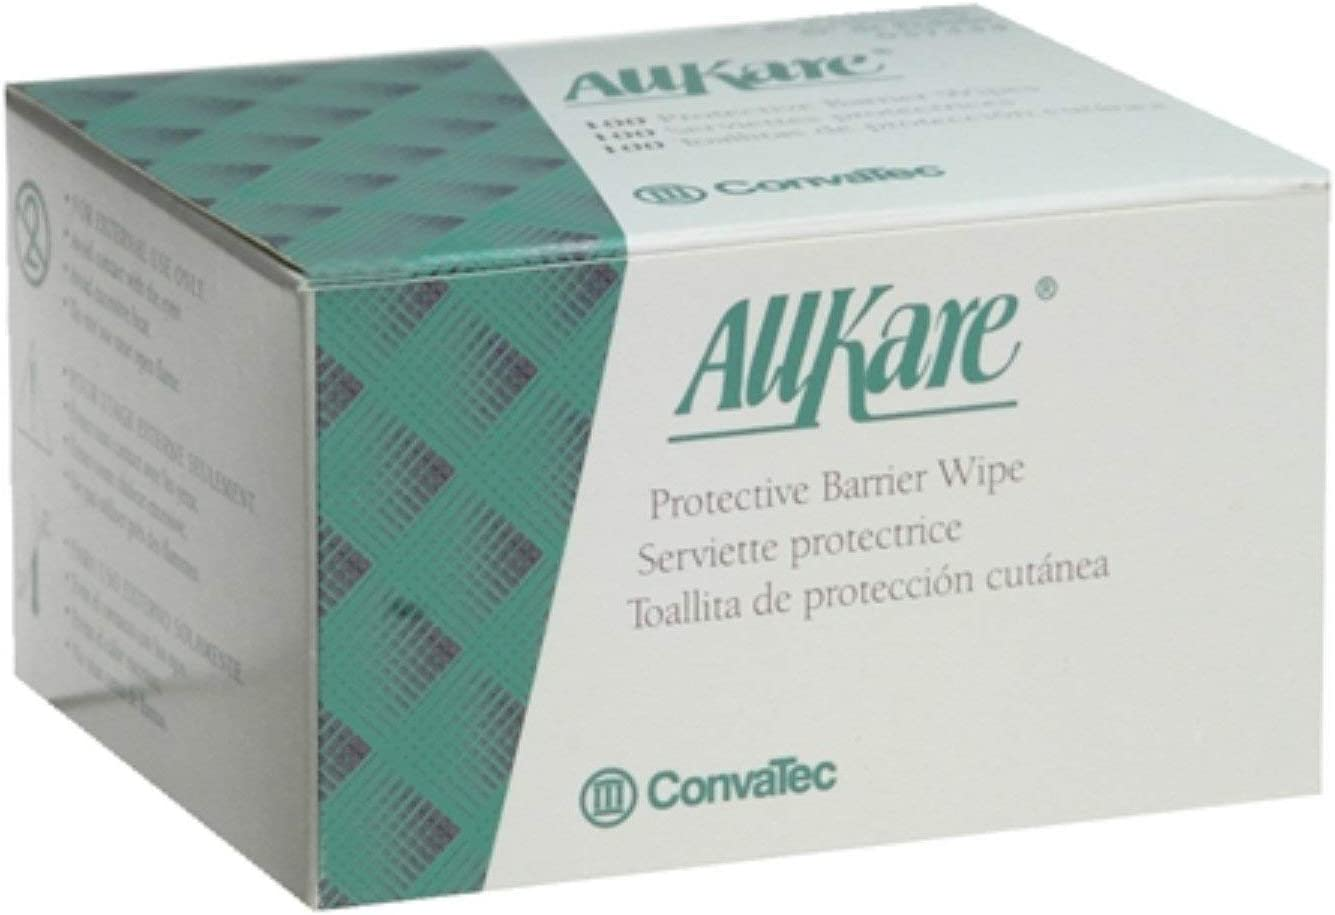 ConvaTec AllKare Protective Barrier Wipes o Pack 37444 Las Vegas Mall 100 Each Over item handling ☆